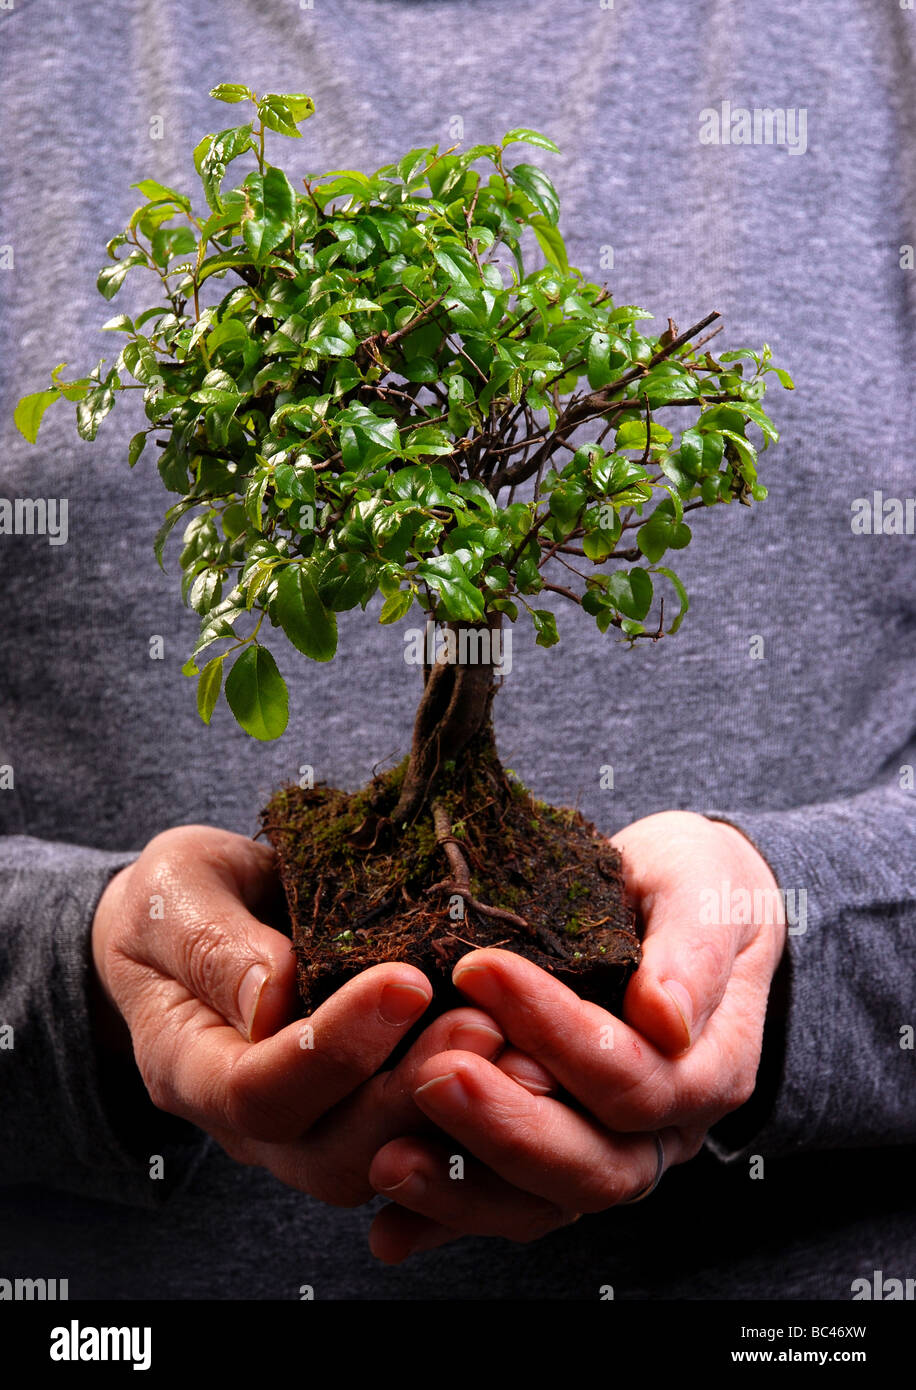 Hands holding a Bonsai tree high resolution image - Stock Image